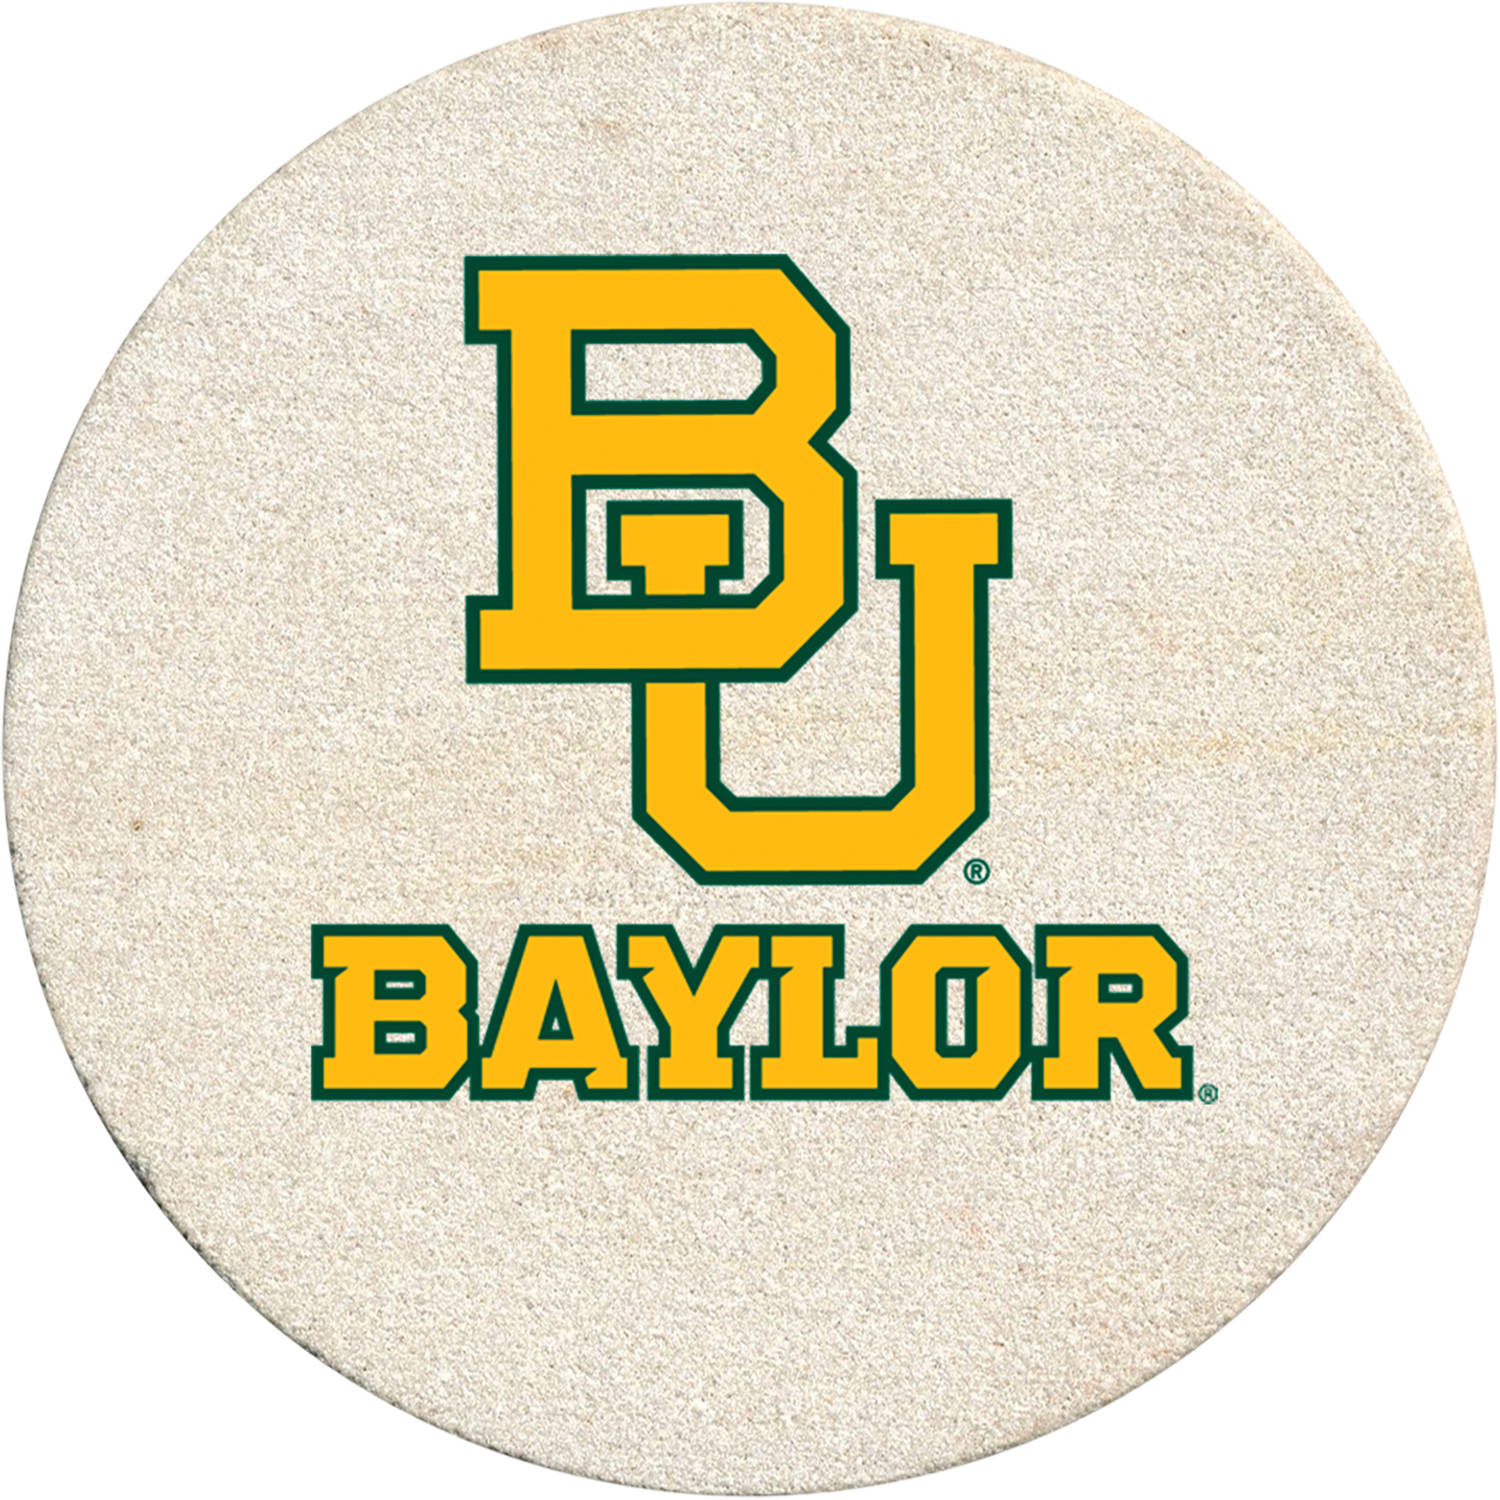 Thirstystone Drink Coaster Set, Baylor University